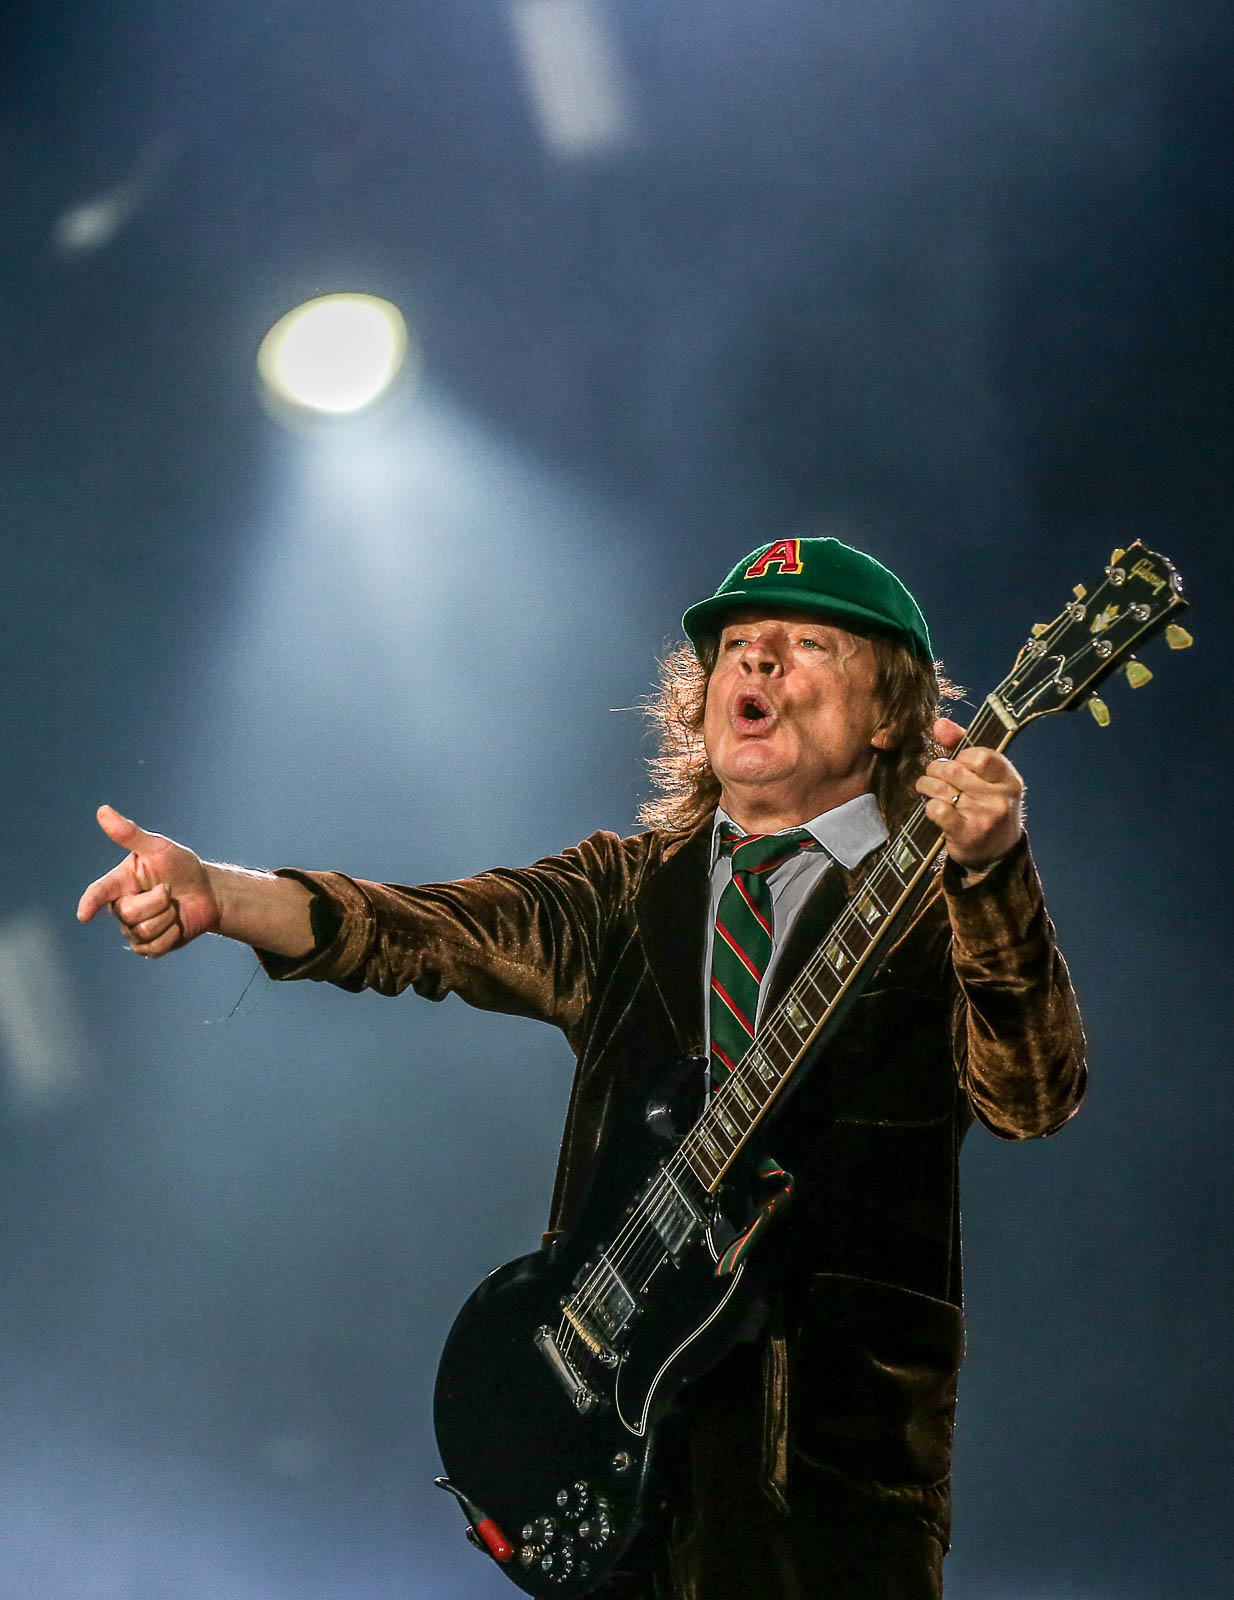 Angus young3 ACDC